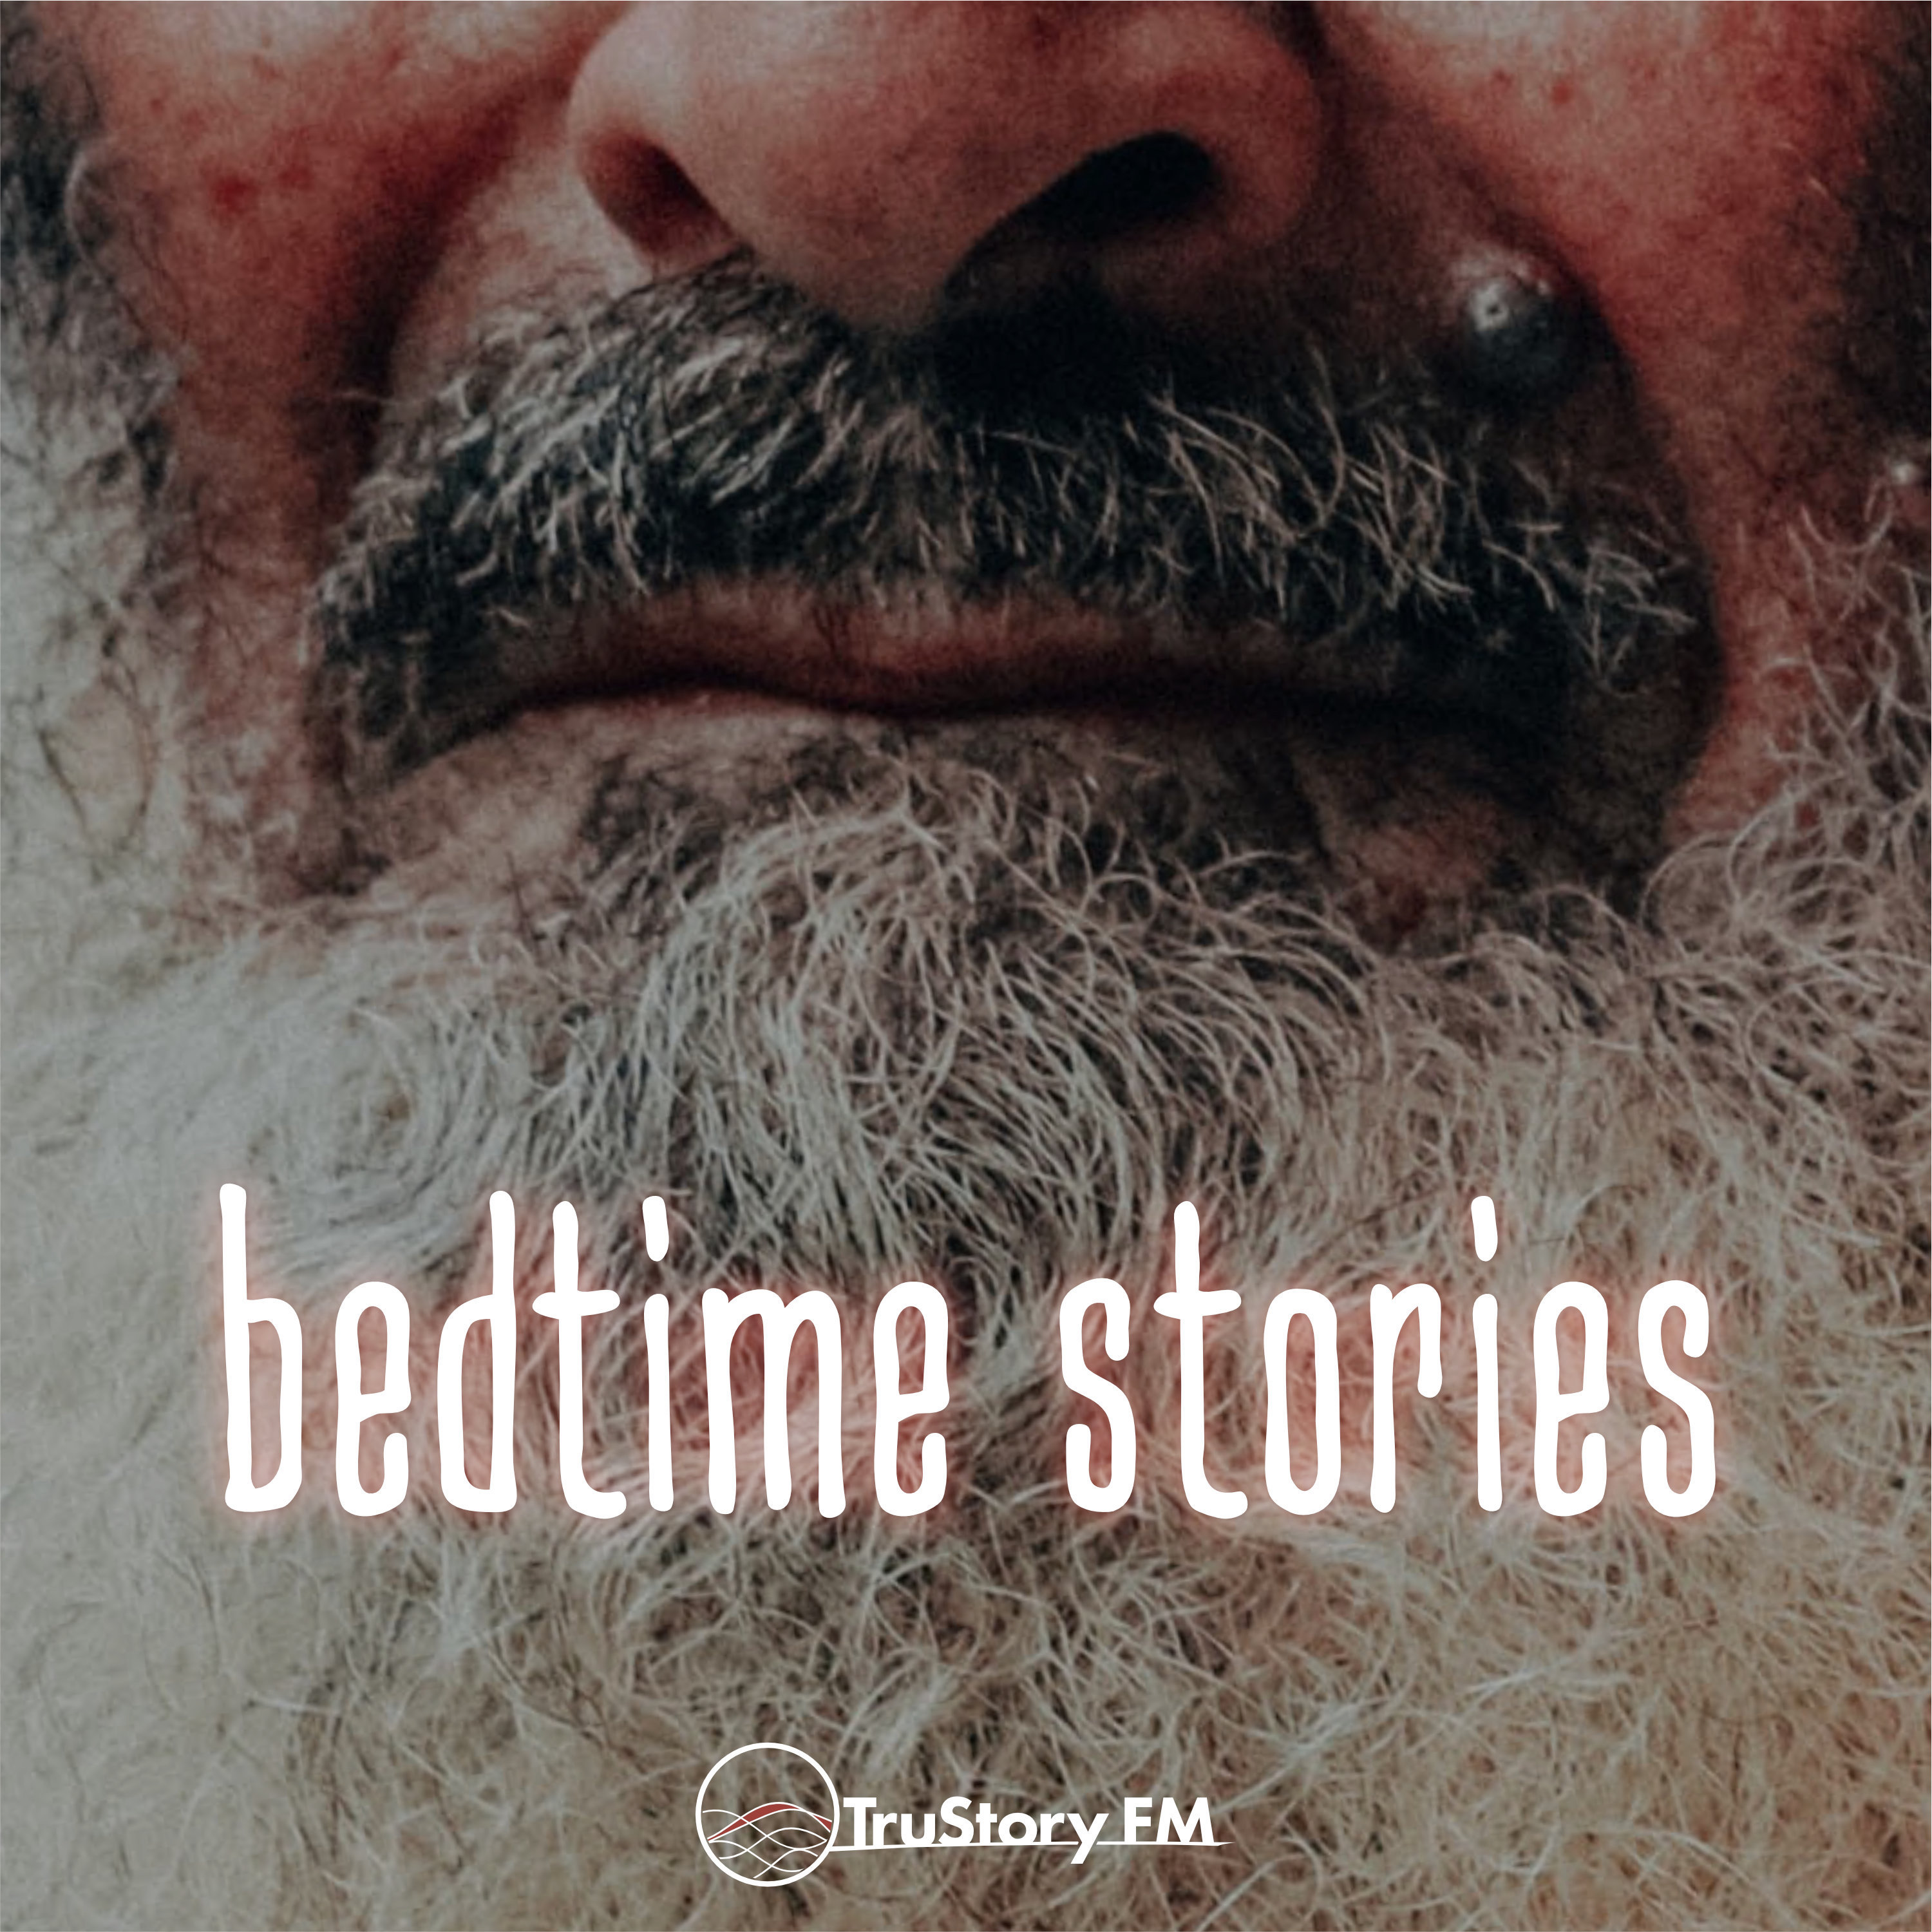 Uncle Scrubby's Bedtime Stories